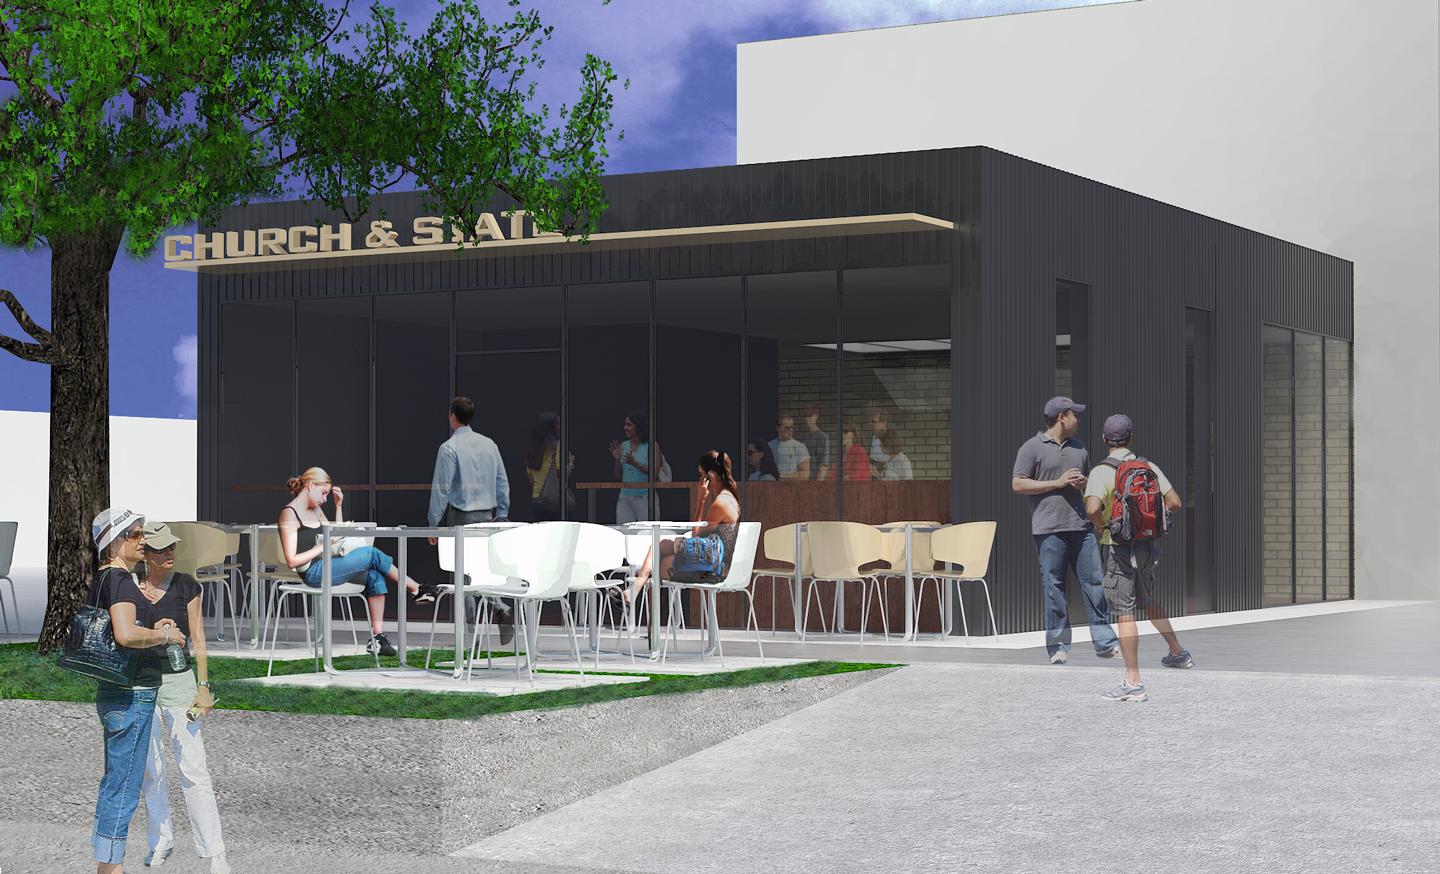 Church & State - Concept for a coffee shop in Salt Lake City.